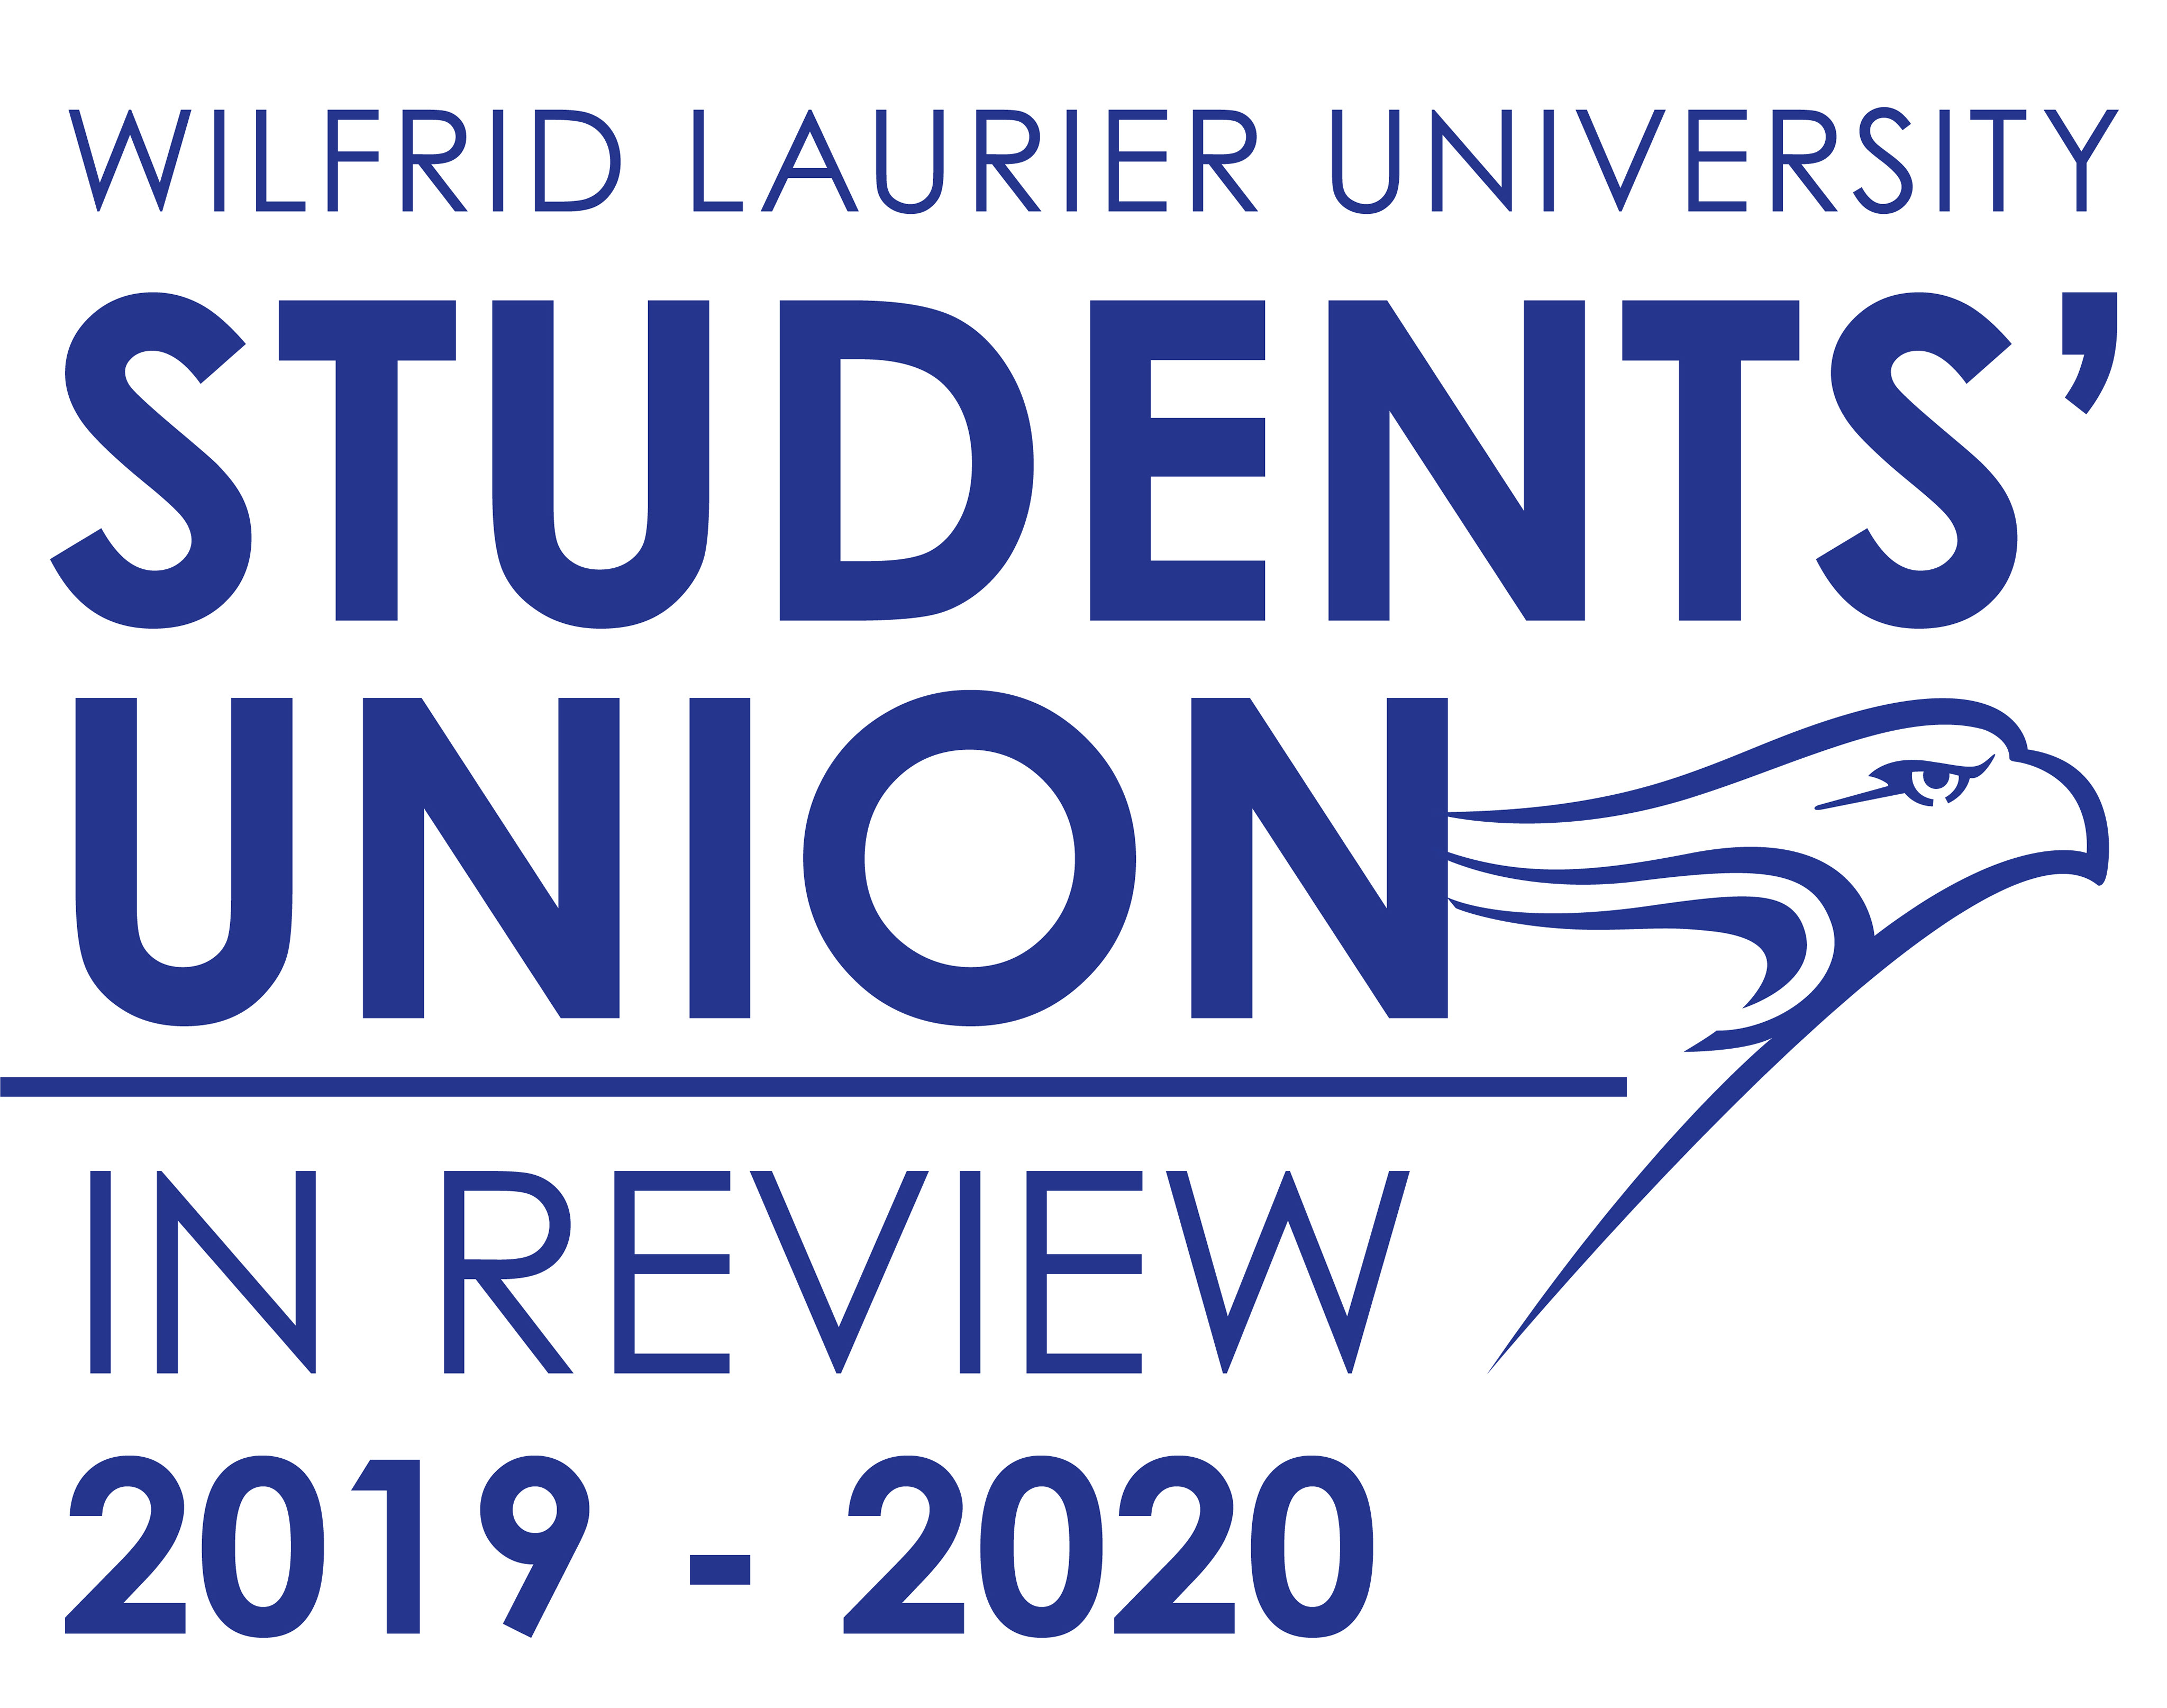 WLU Students' Union 2019-2020 Annual Report